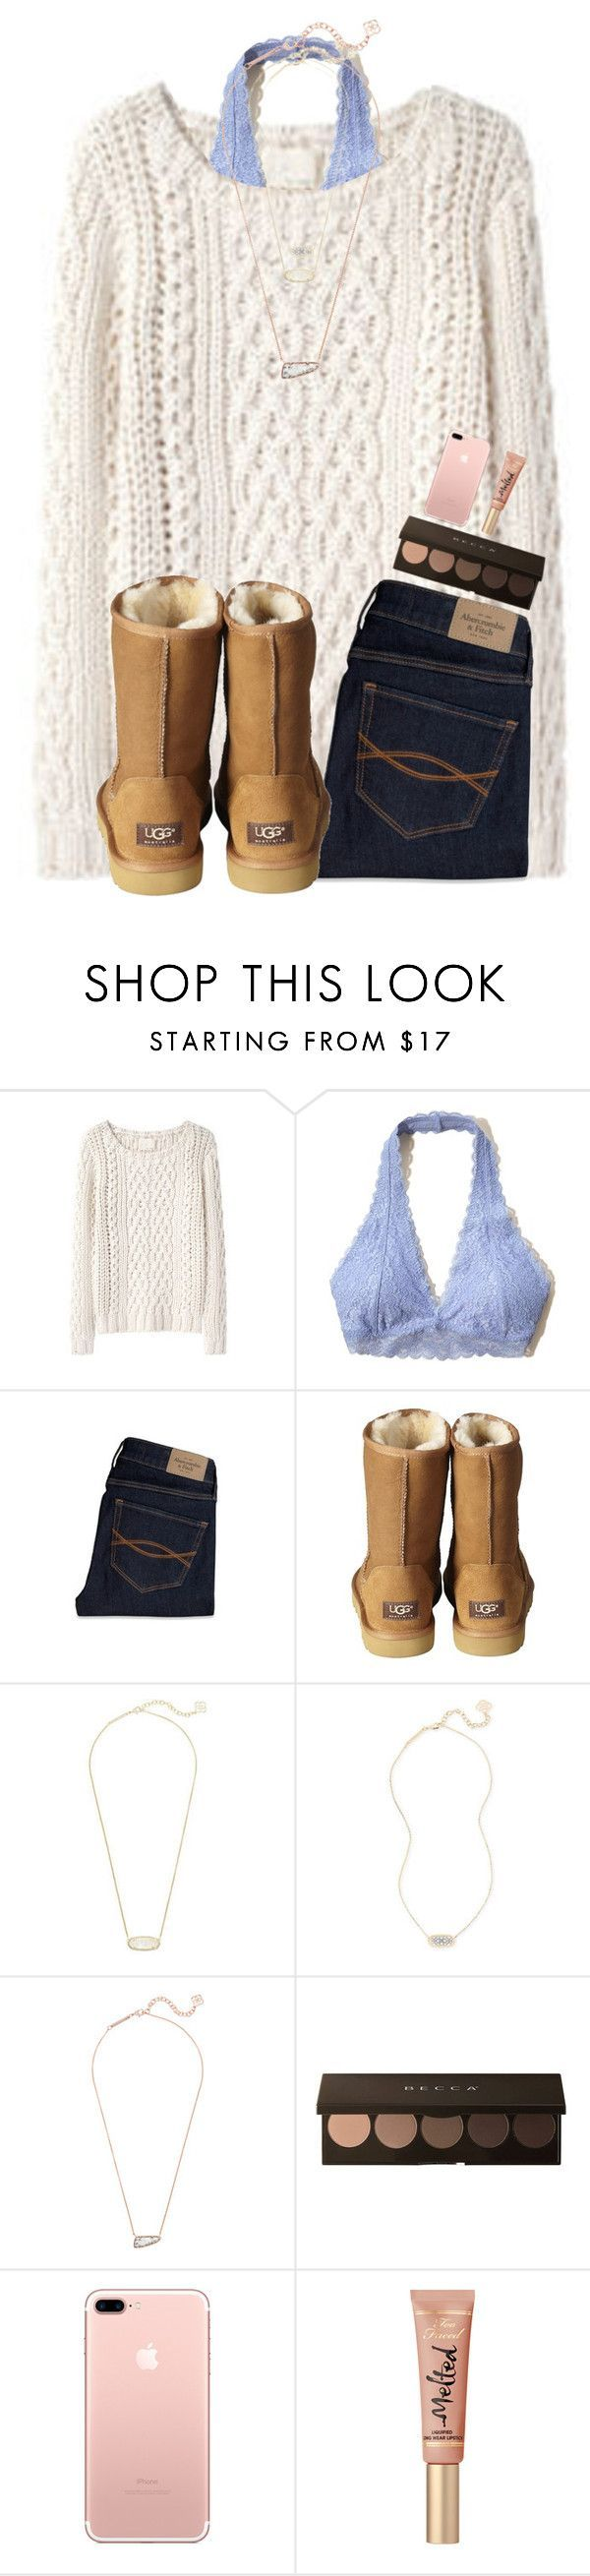 """Comfy and warm:)"" by emmagracejoness ❤ liked on Polyvore featuring Hollister Co., Abercrombie & Fitch, UGG Australia and Kendra Scott"